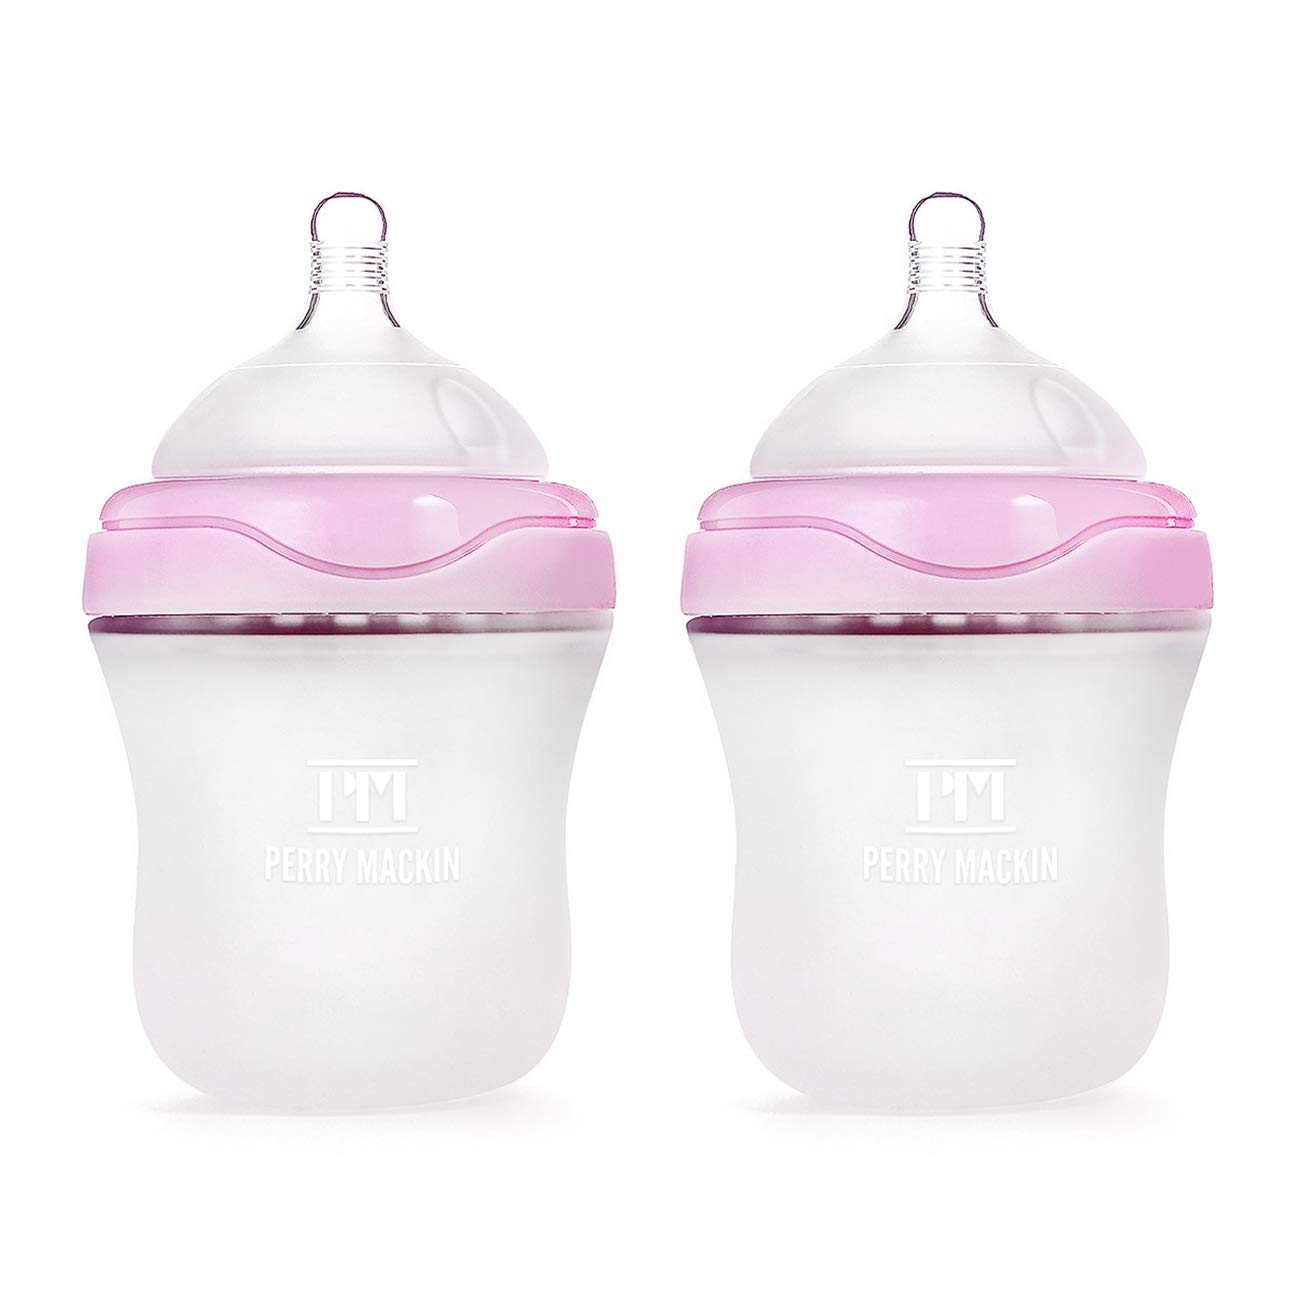 Perry Mackin Anti-Colic Silicone Baby Bottle, 6 Ounces, Pink (2-Pack)